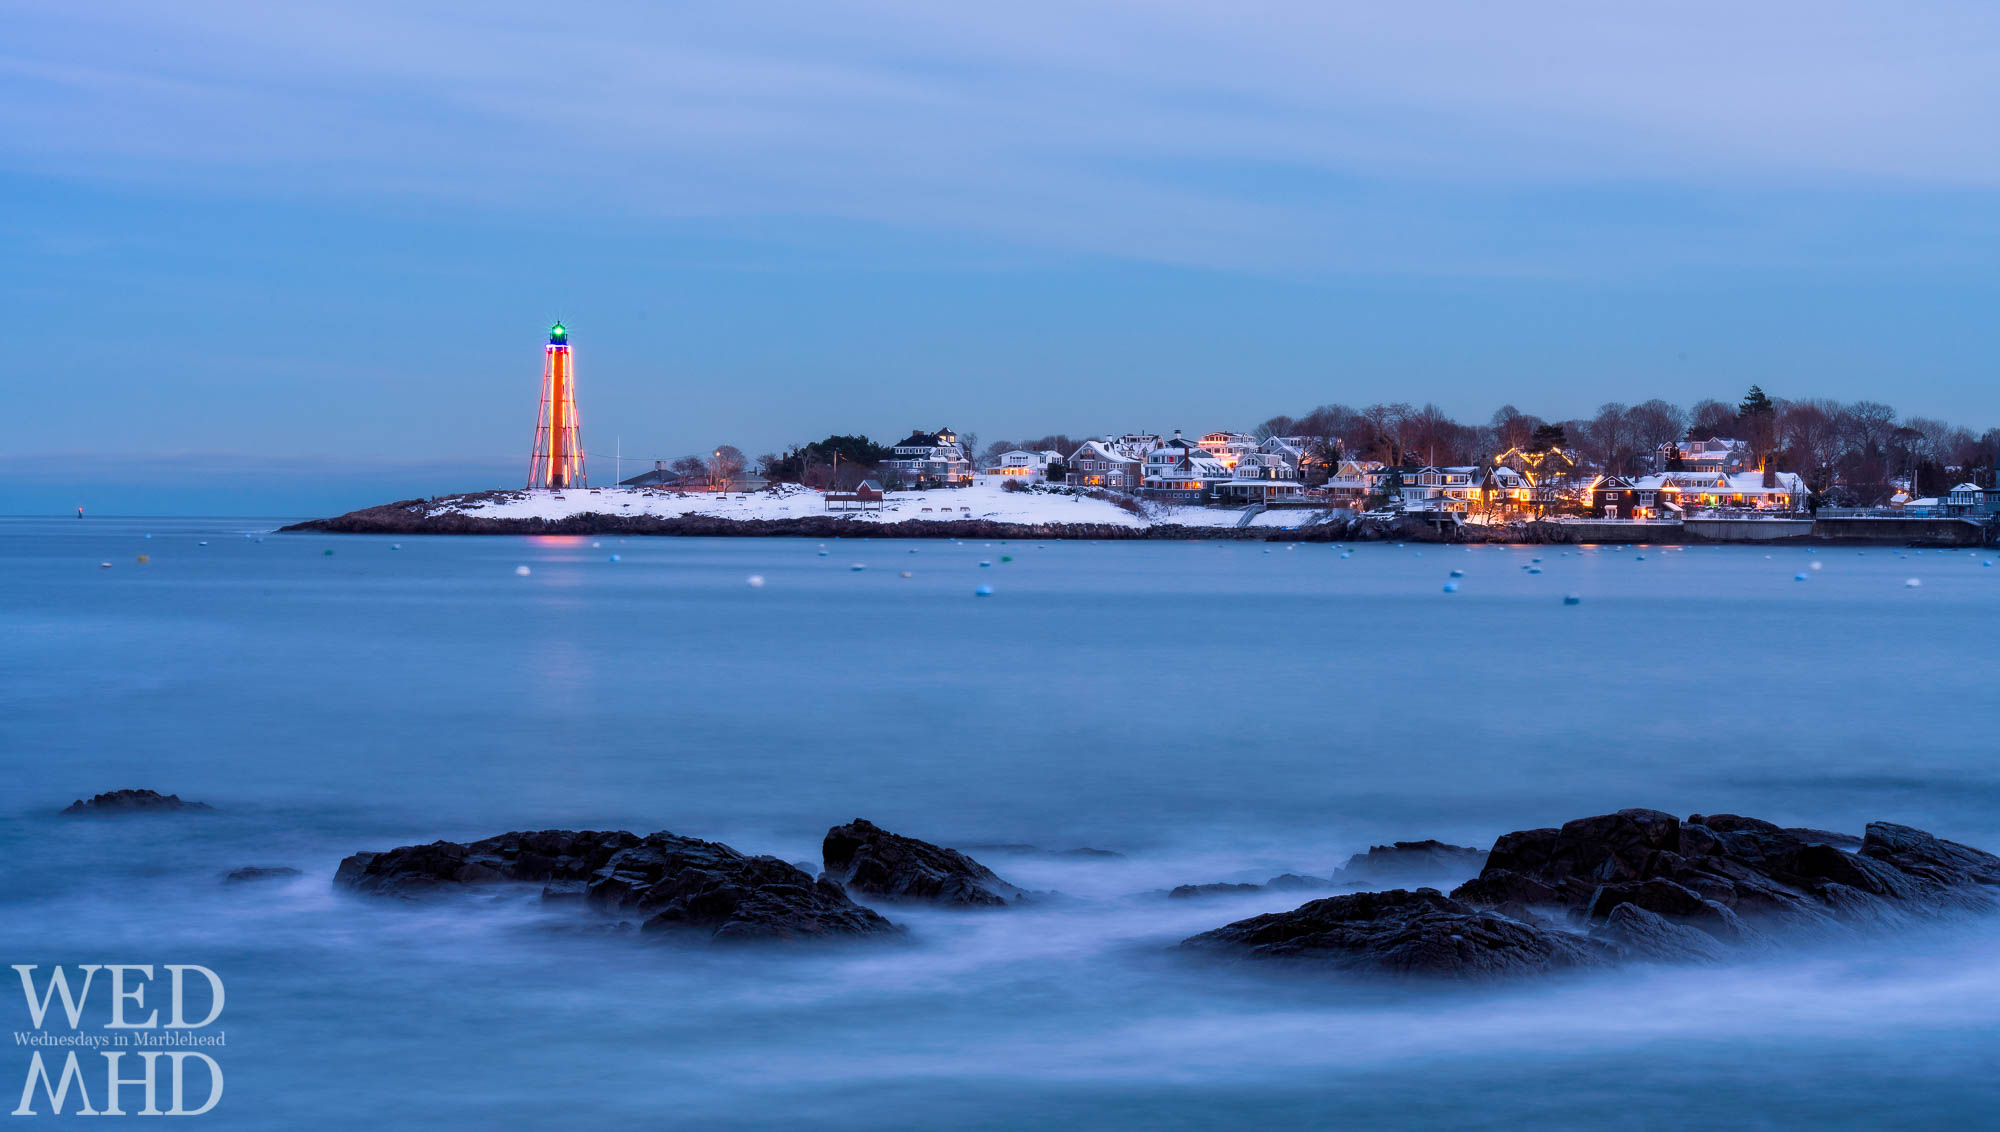 Marblehead Light seen shining bright on the neck with fresh fallen snow contrasting the rocks and a long exposure softening the waves